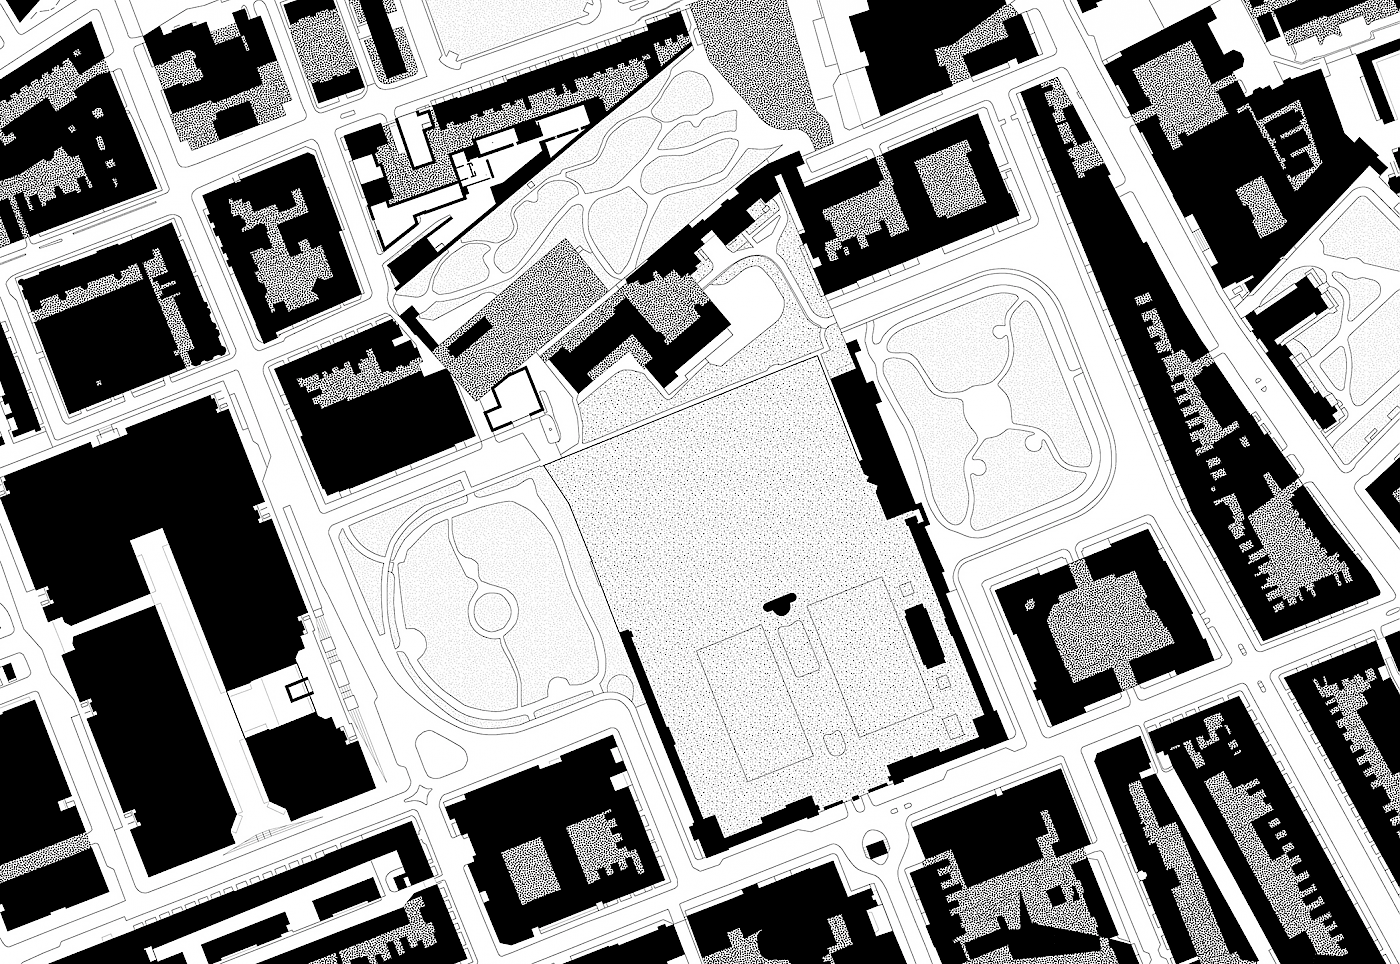 Streets, Squares, Religious, Cultural Space in white, Grass in lightest grey, Coram's Fields in grey, Private Gardens in darkest Grey, Private and Commercial in Black